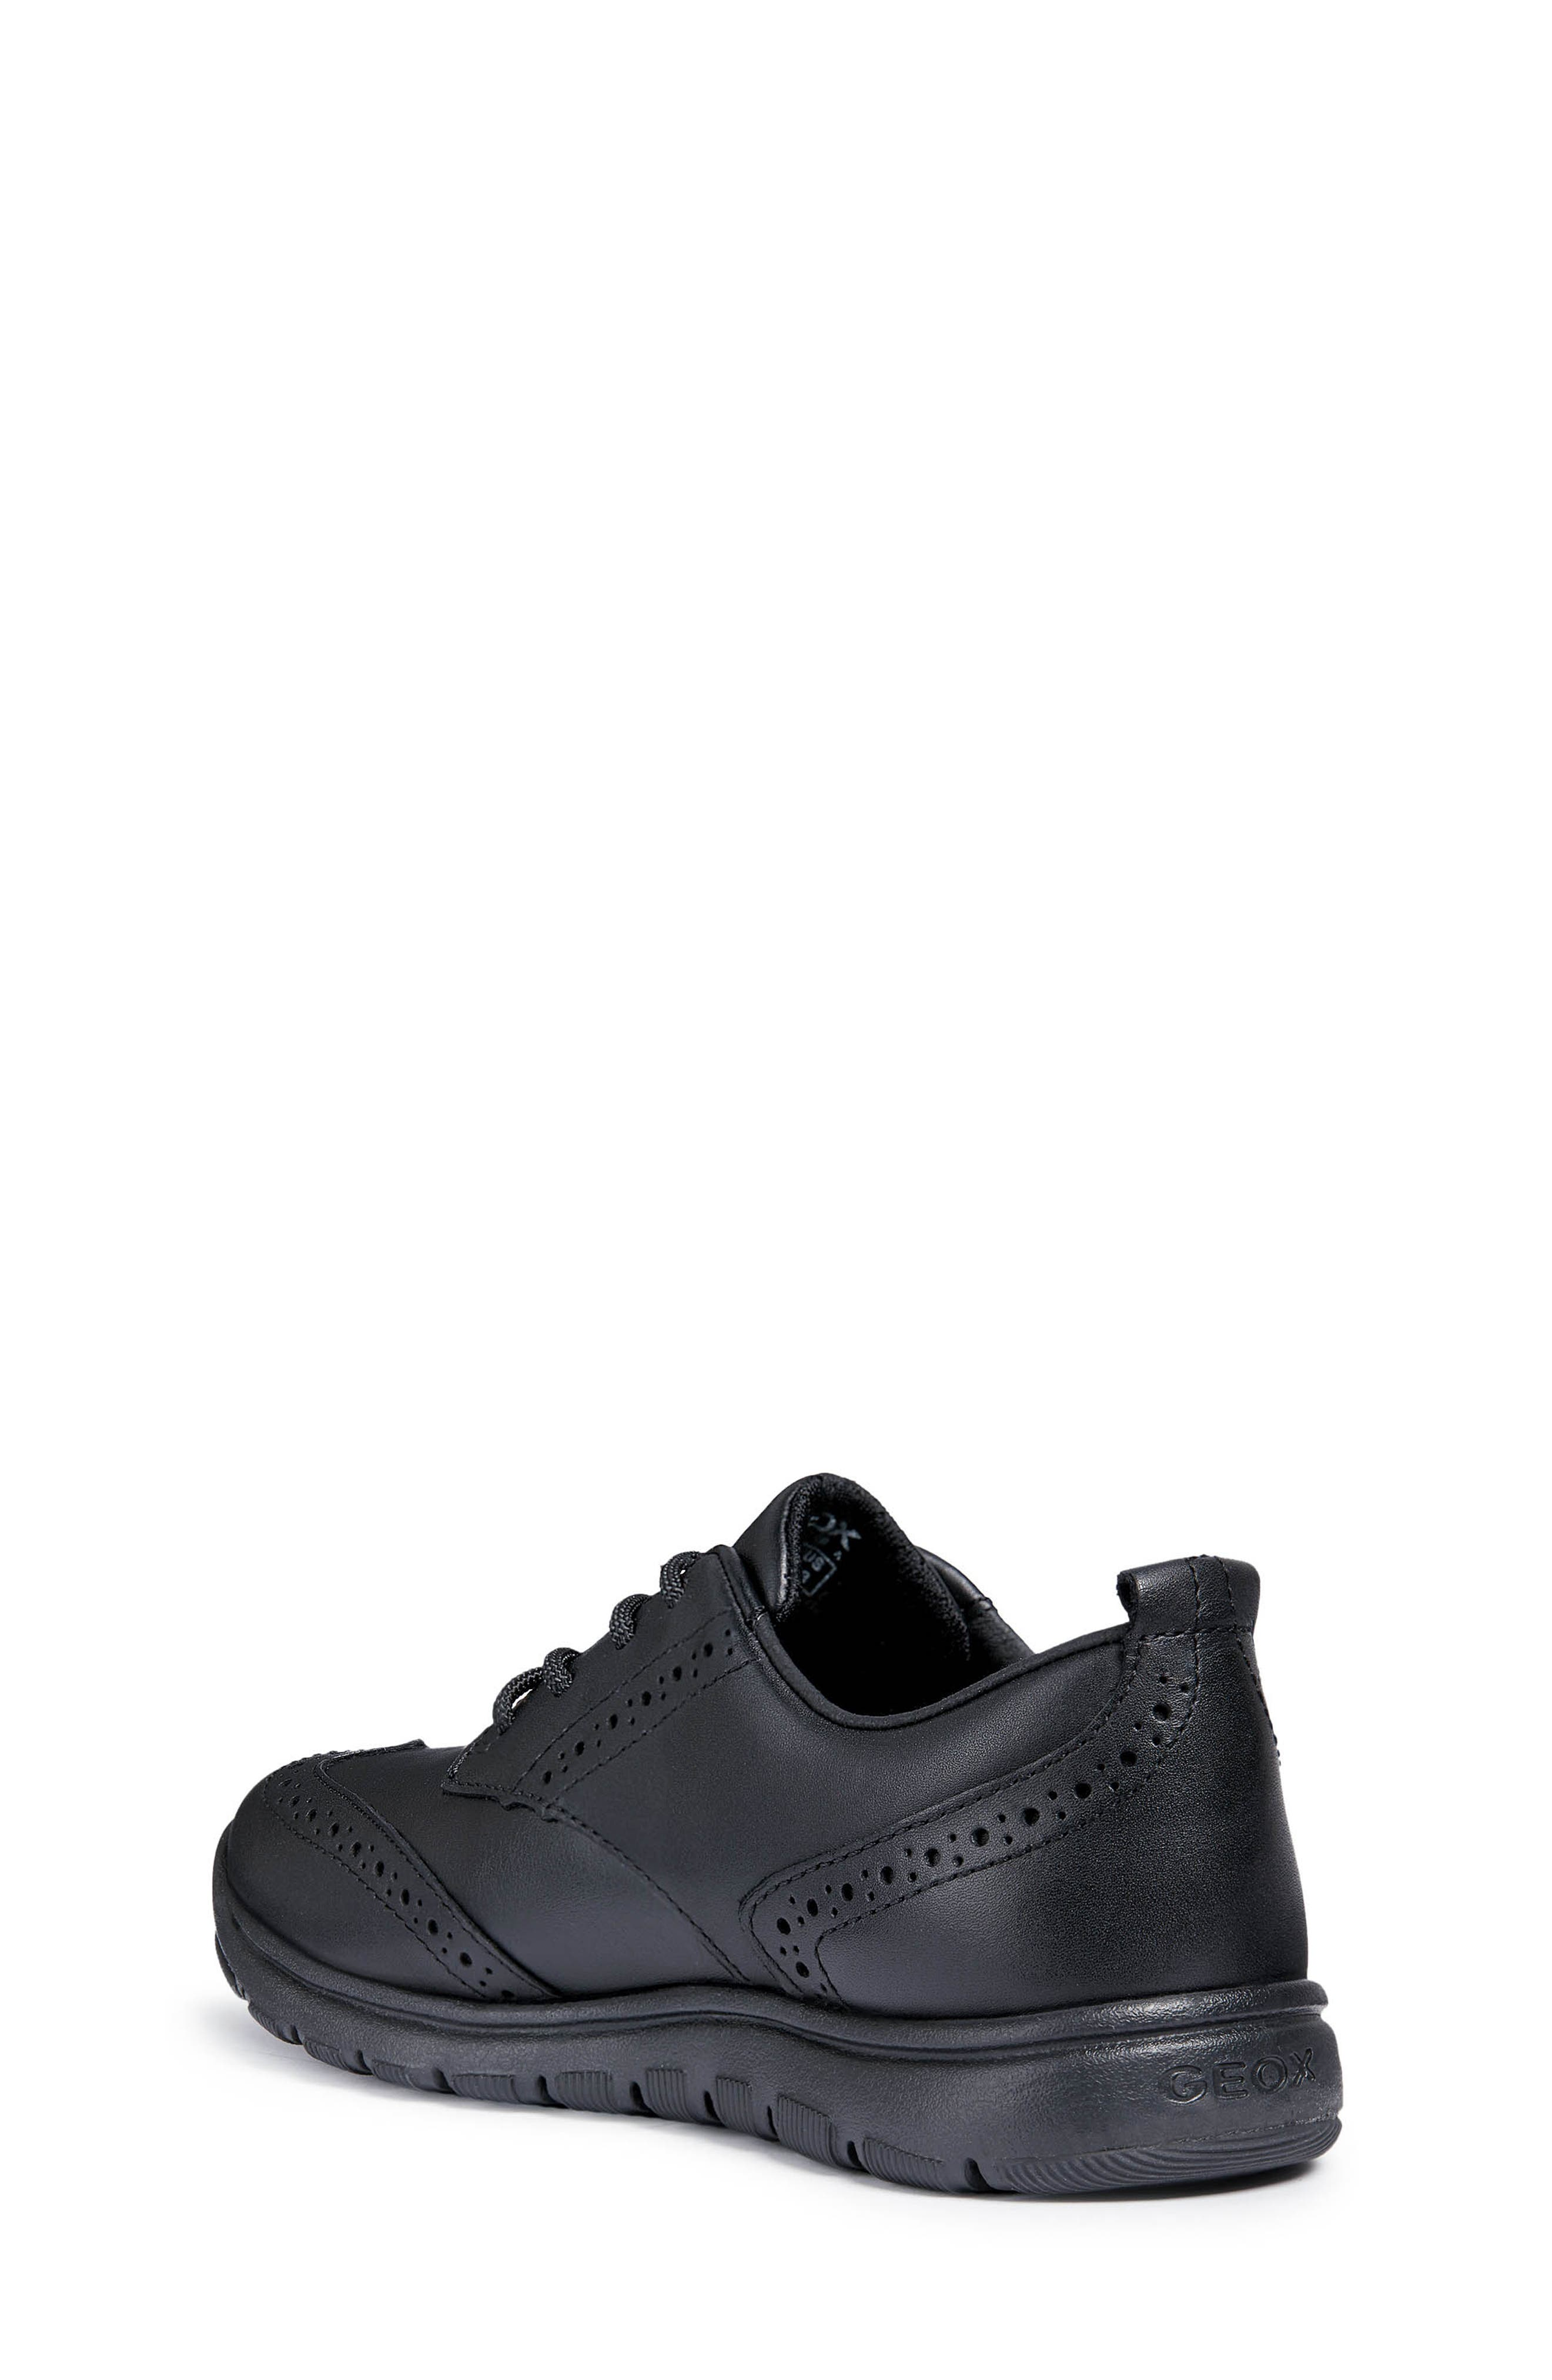 new product 3984d 12a86 Geox | Nordstrom